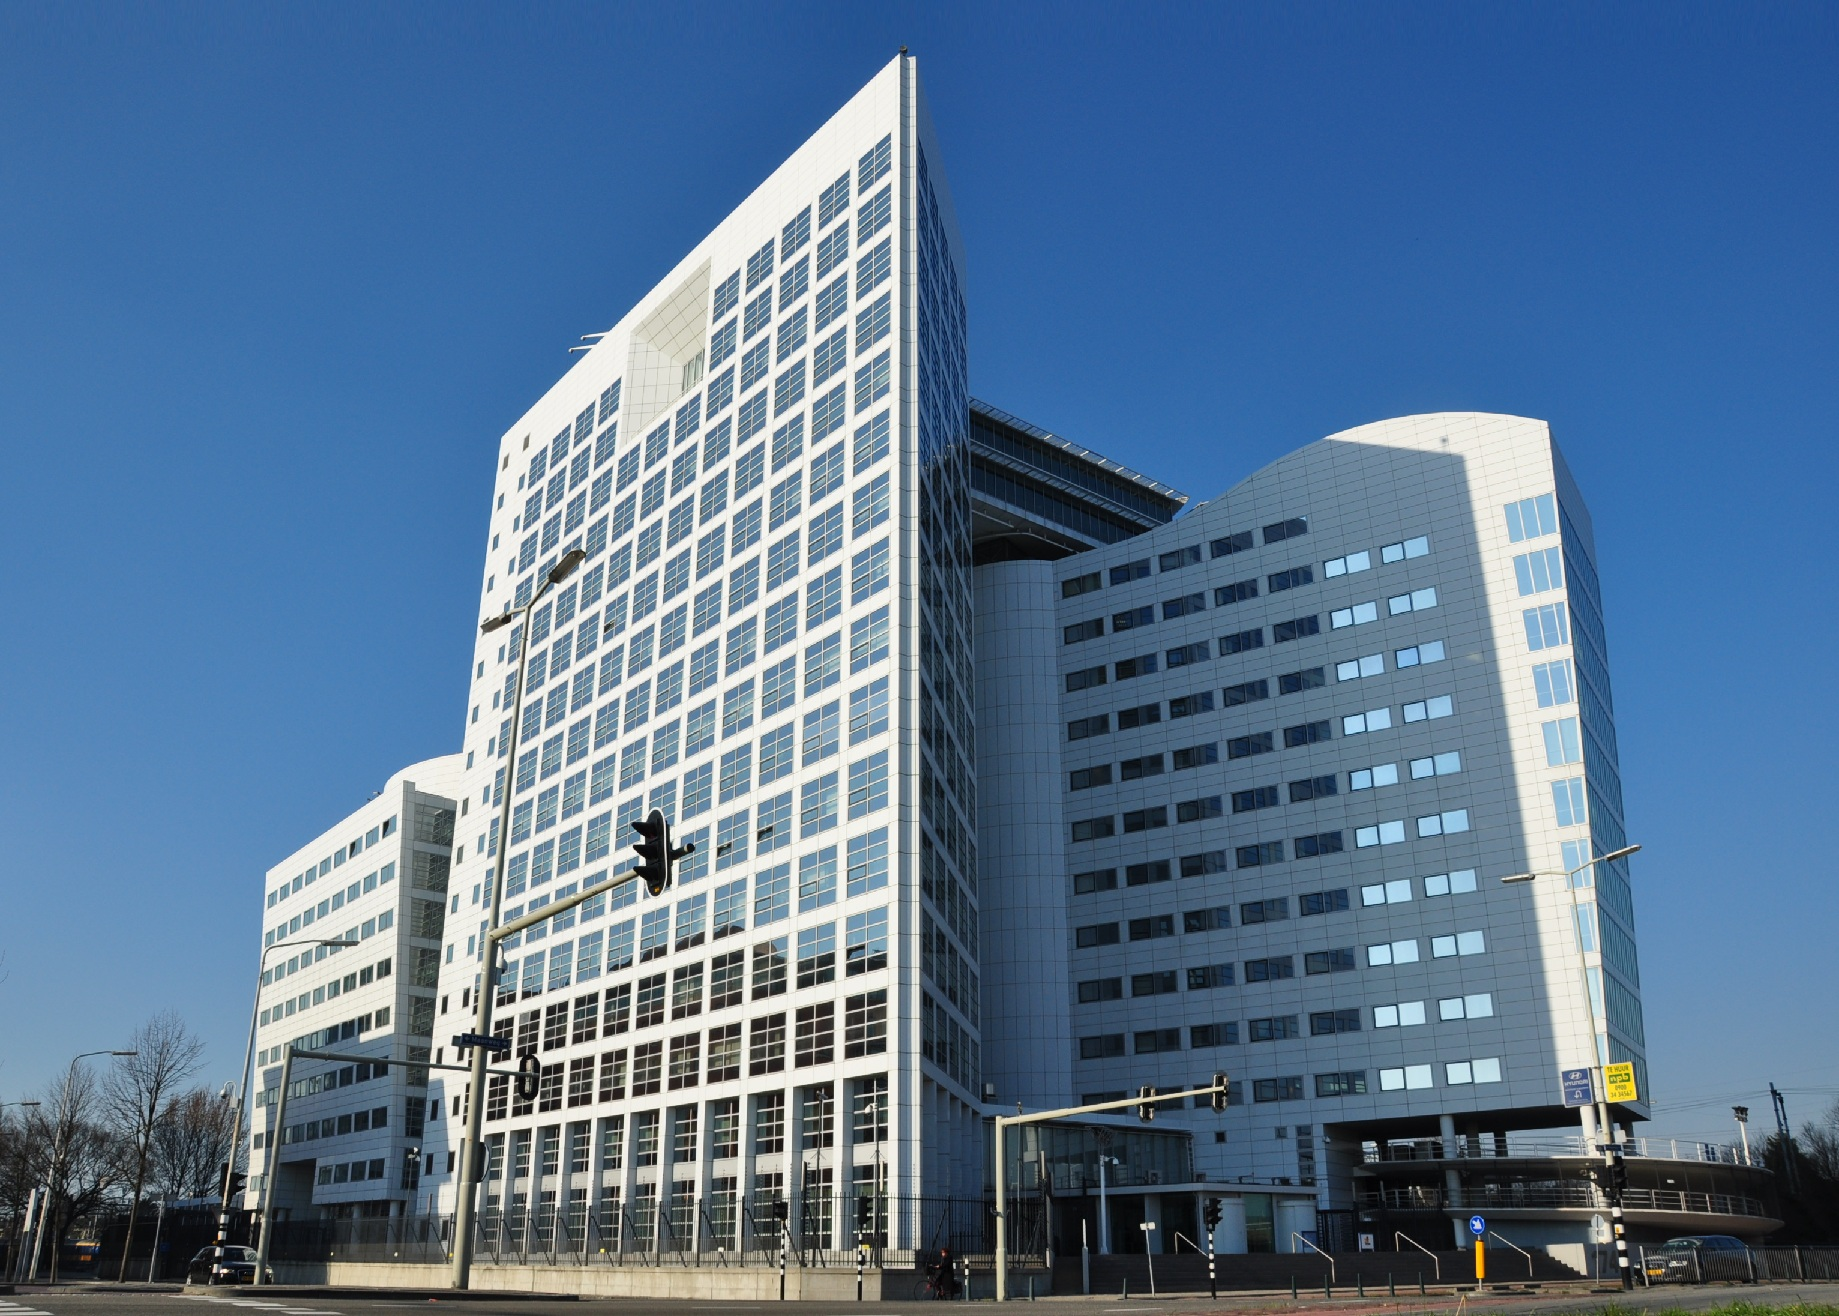 Afbeeldingsresultaat voor international criminal court